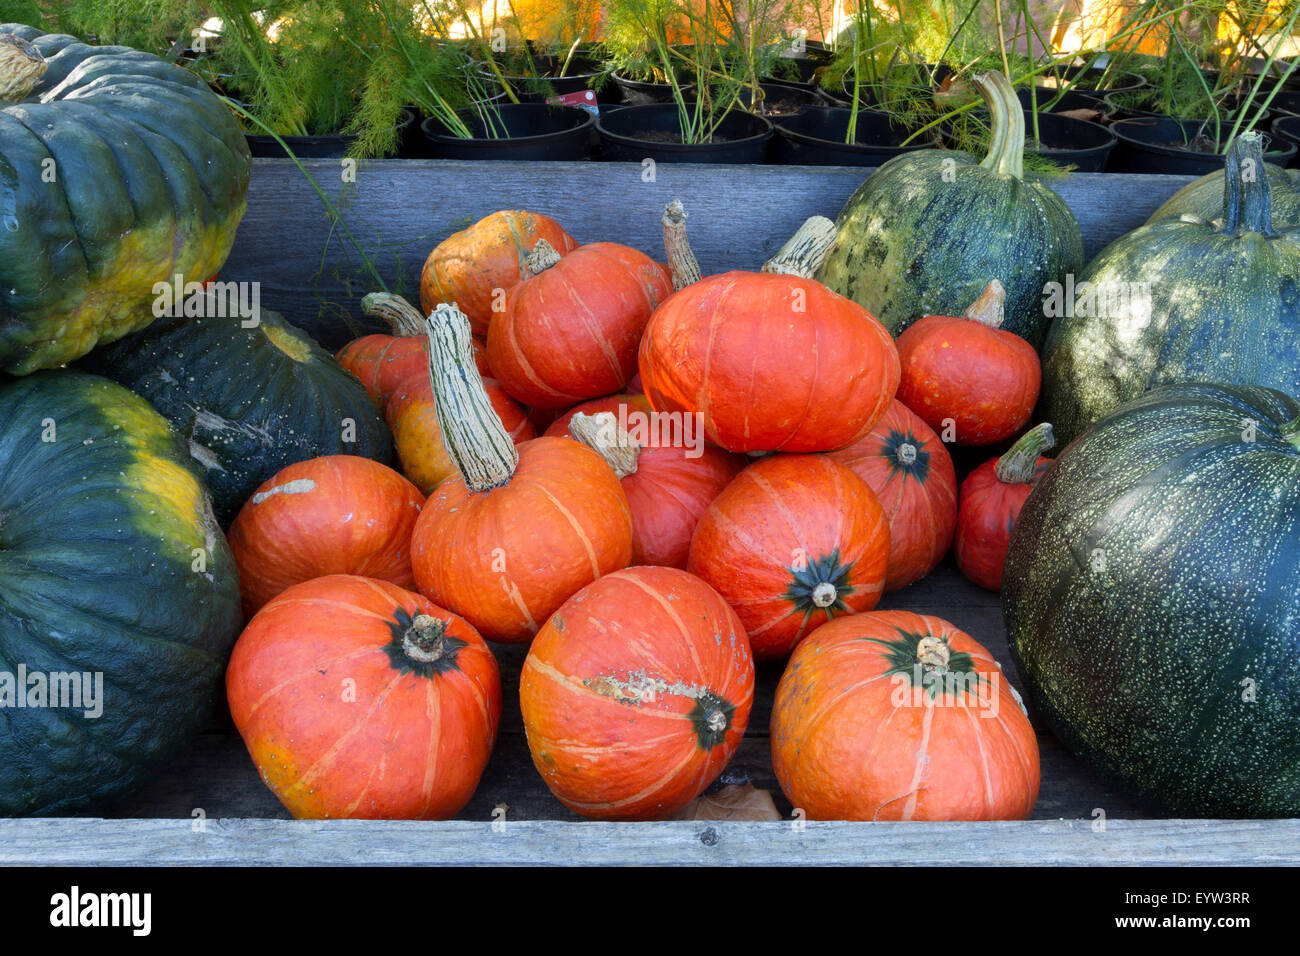 pumpkins for sale - Stock Image